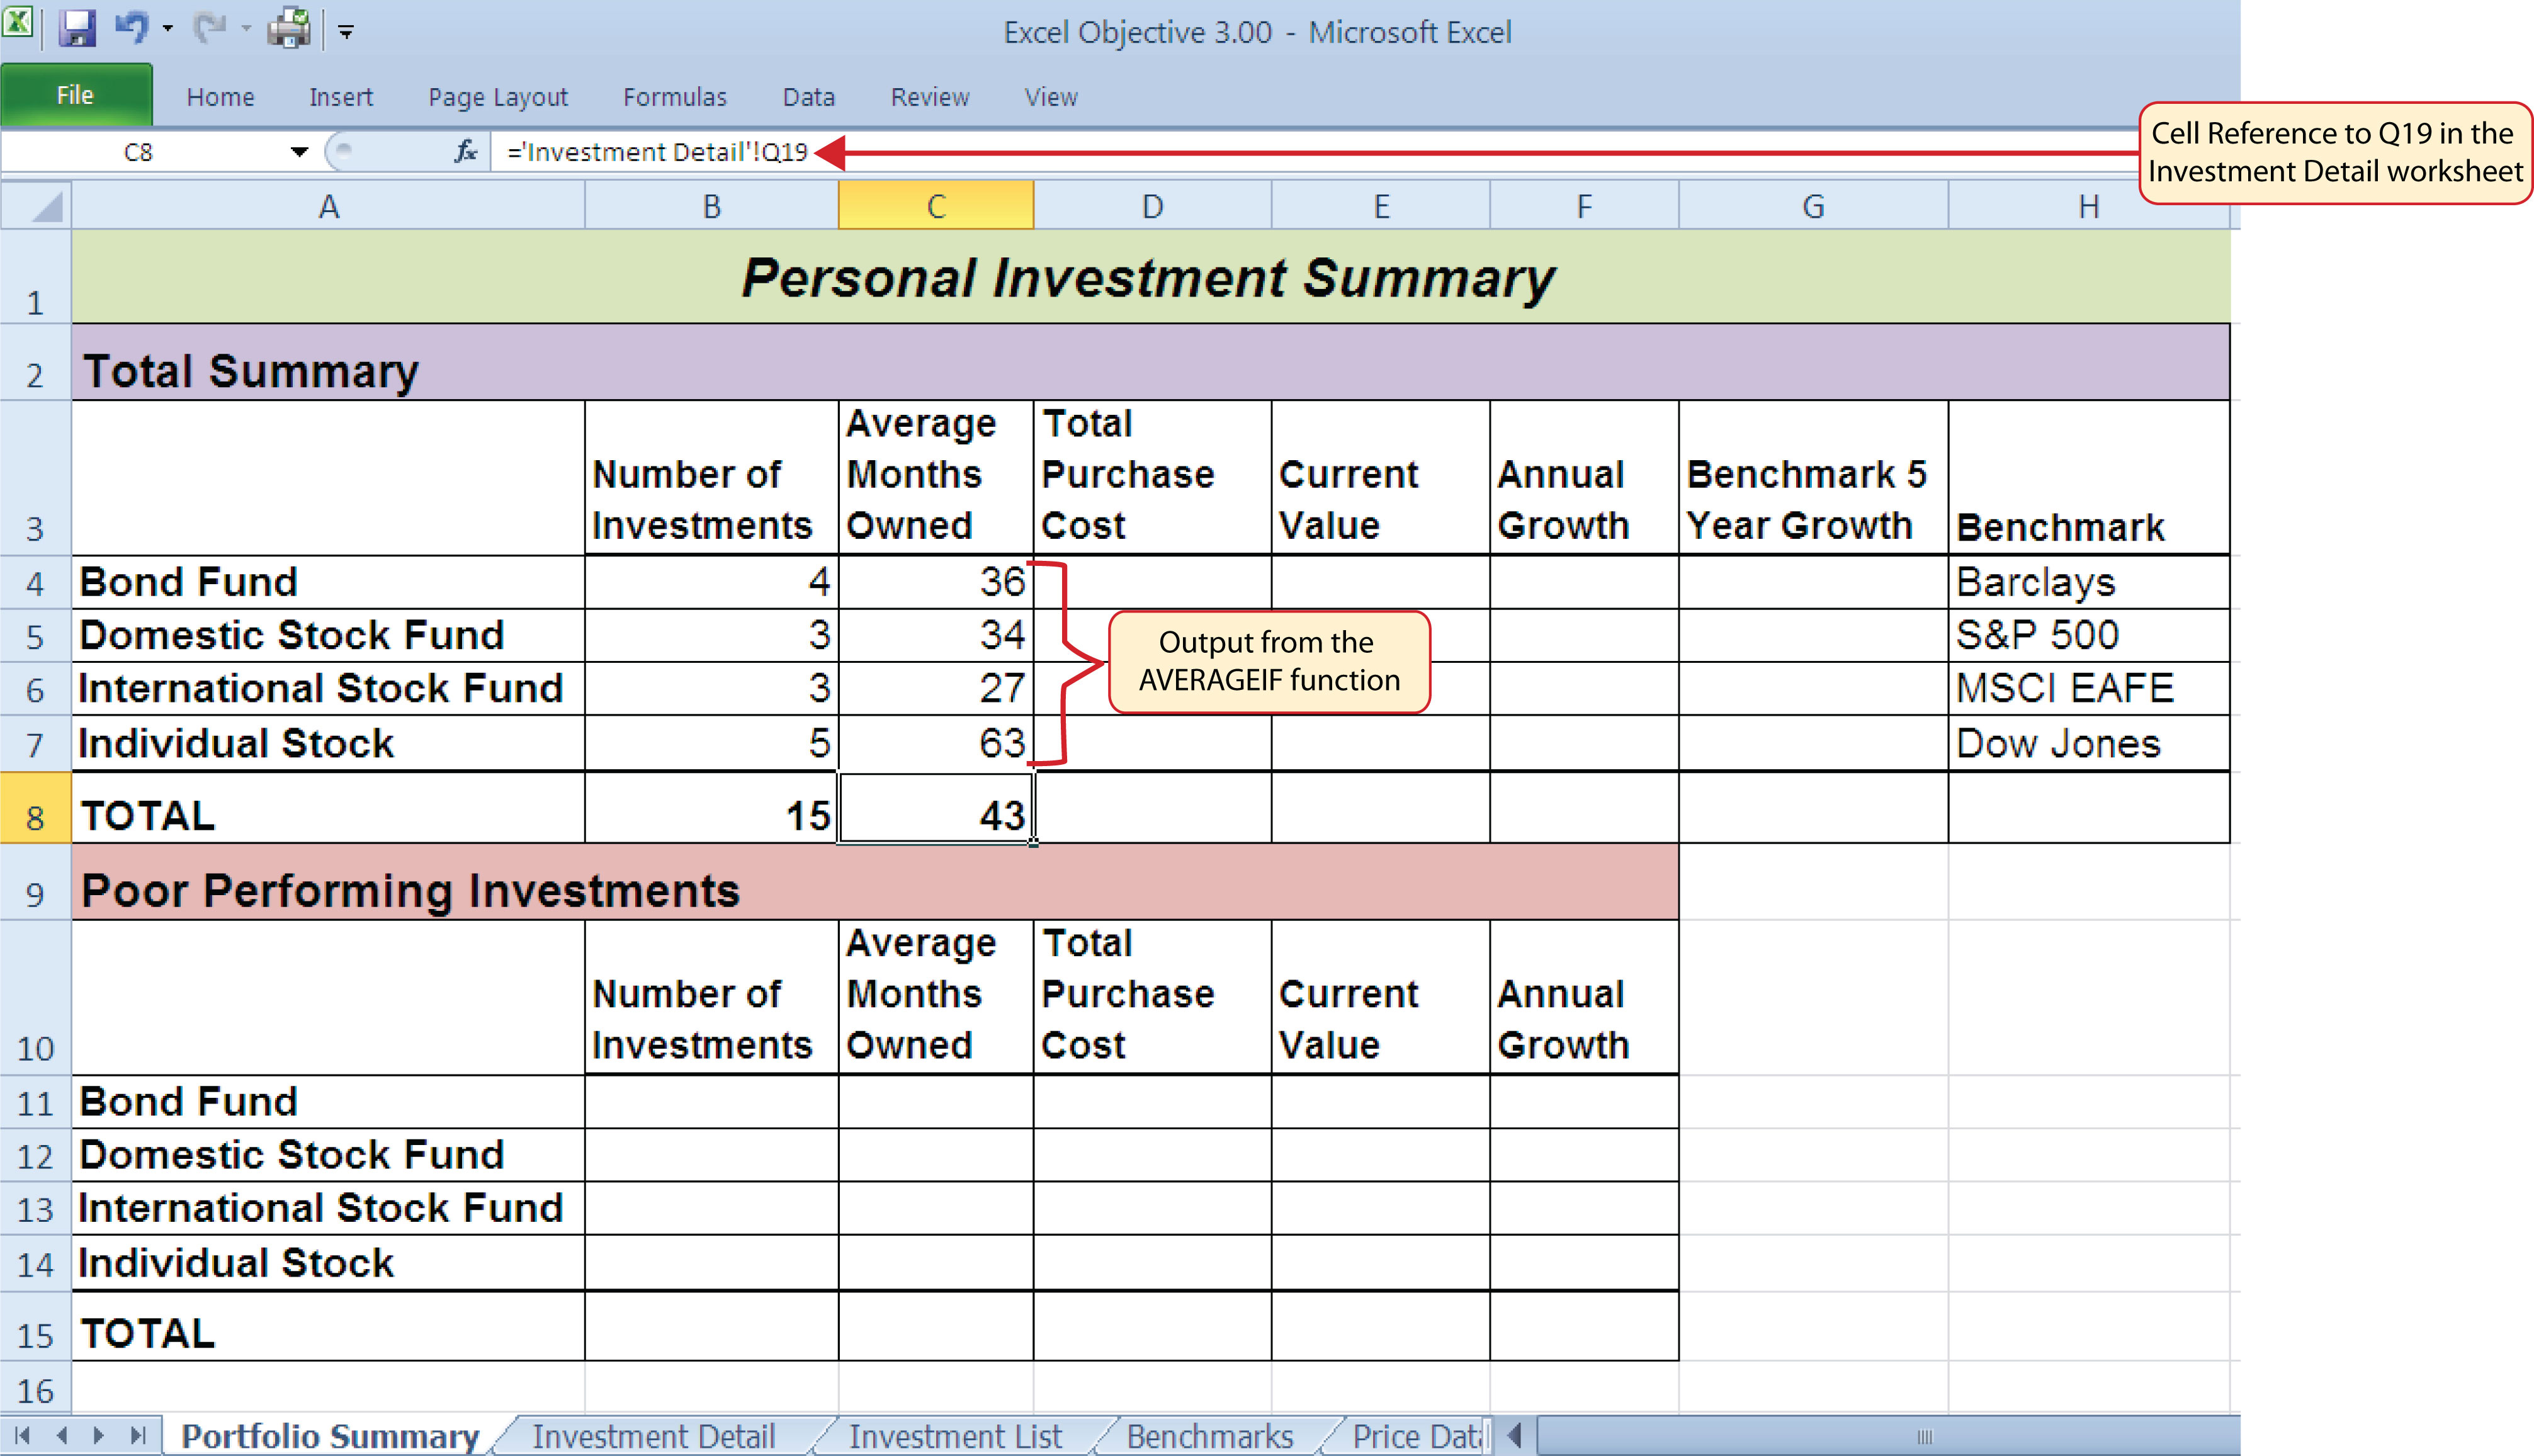 worksheet Five Number Summary Worksheet logical and lookup functions figure 3 29 averageif function output on the portfolio summary worksheet